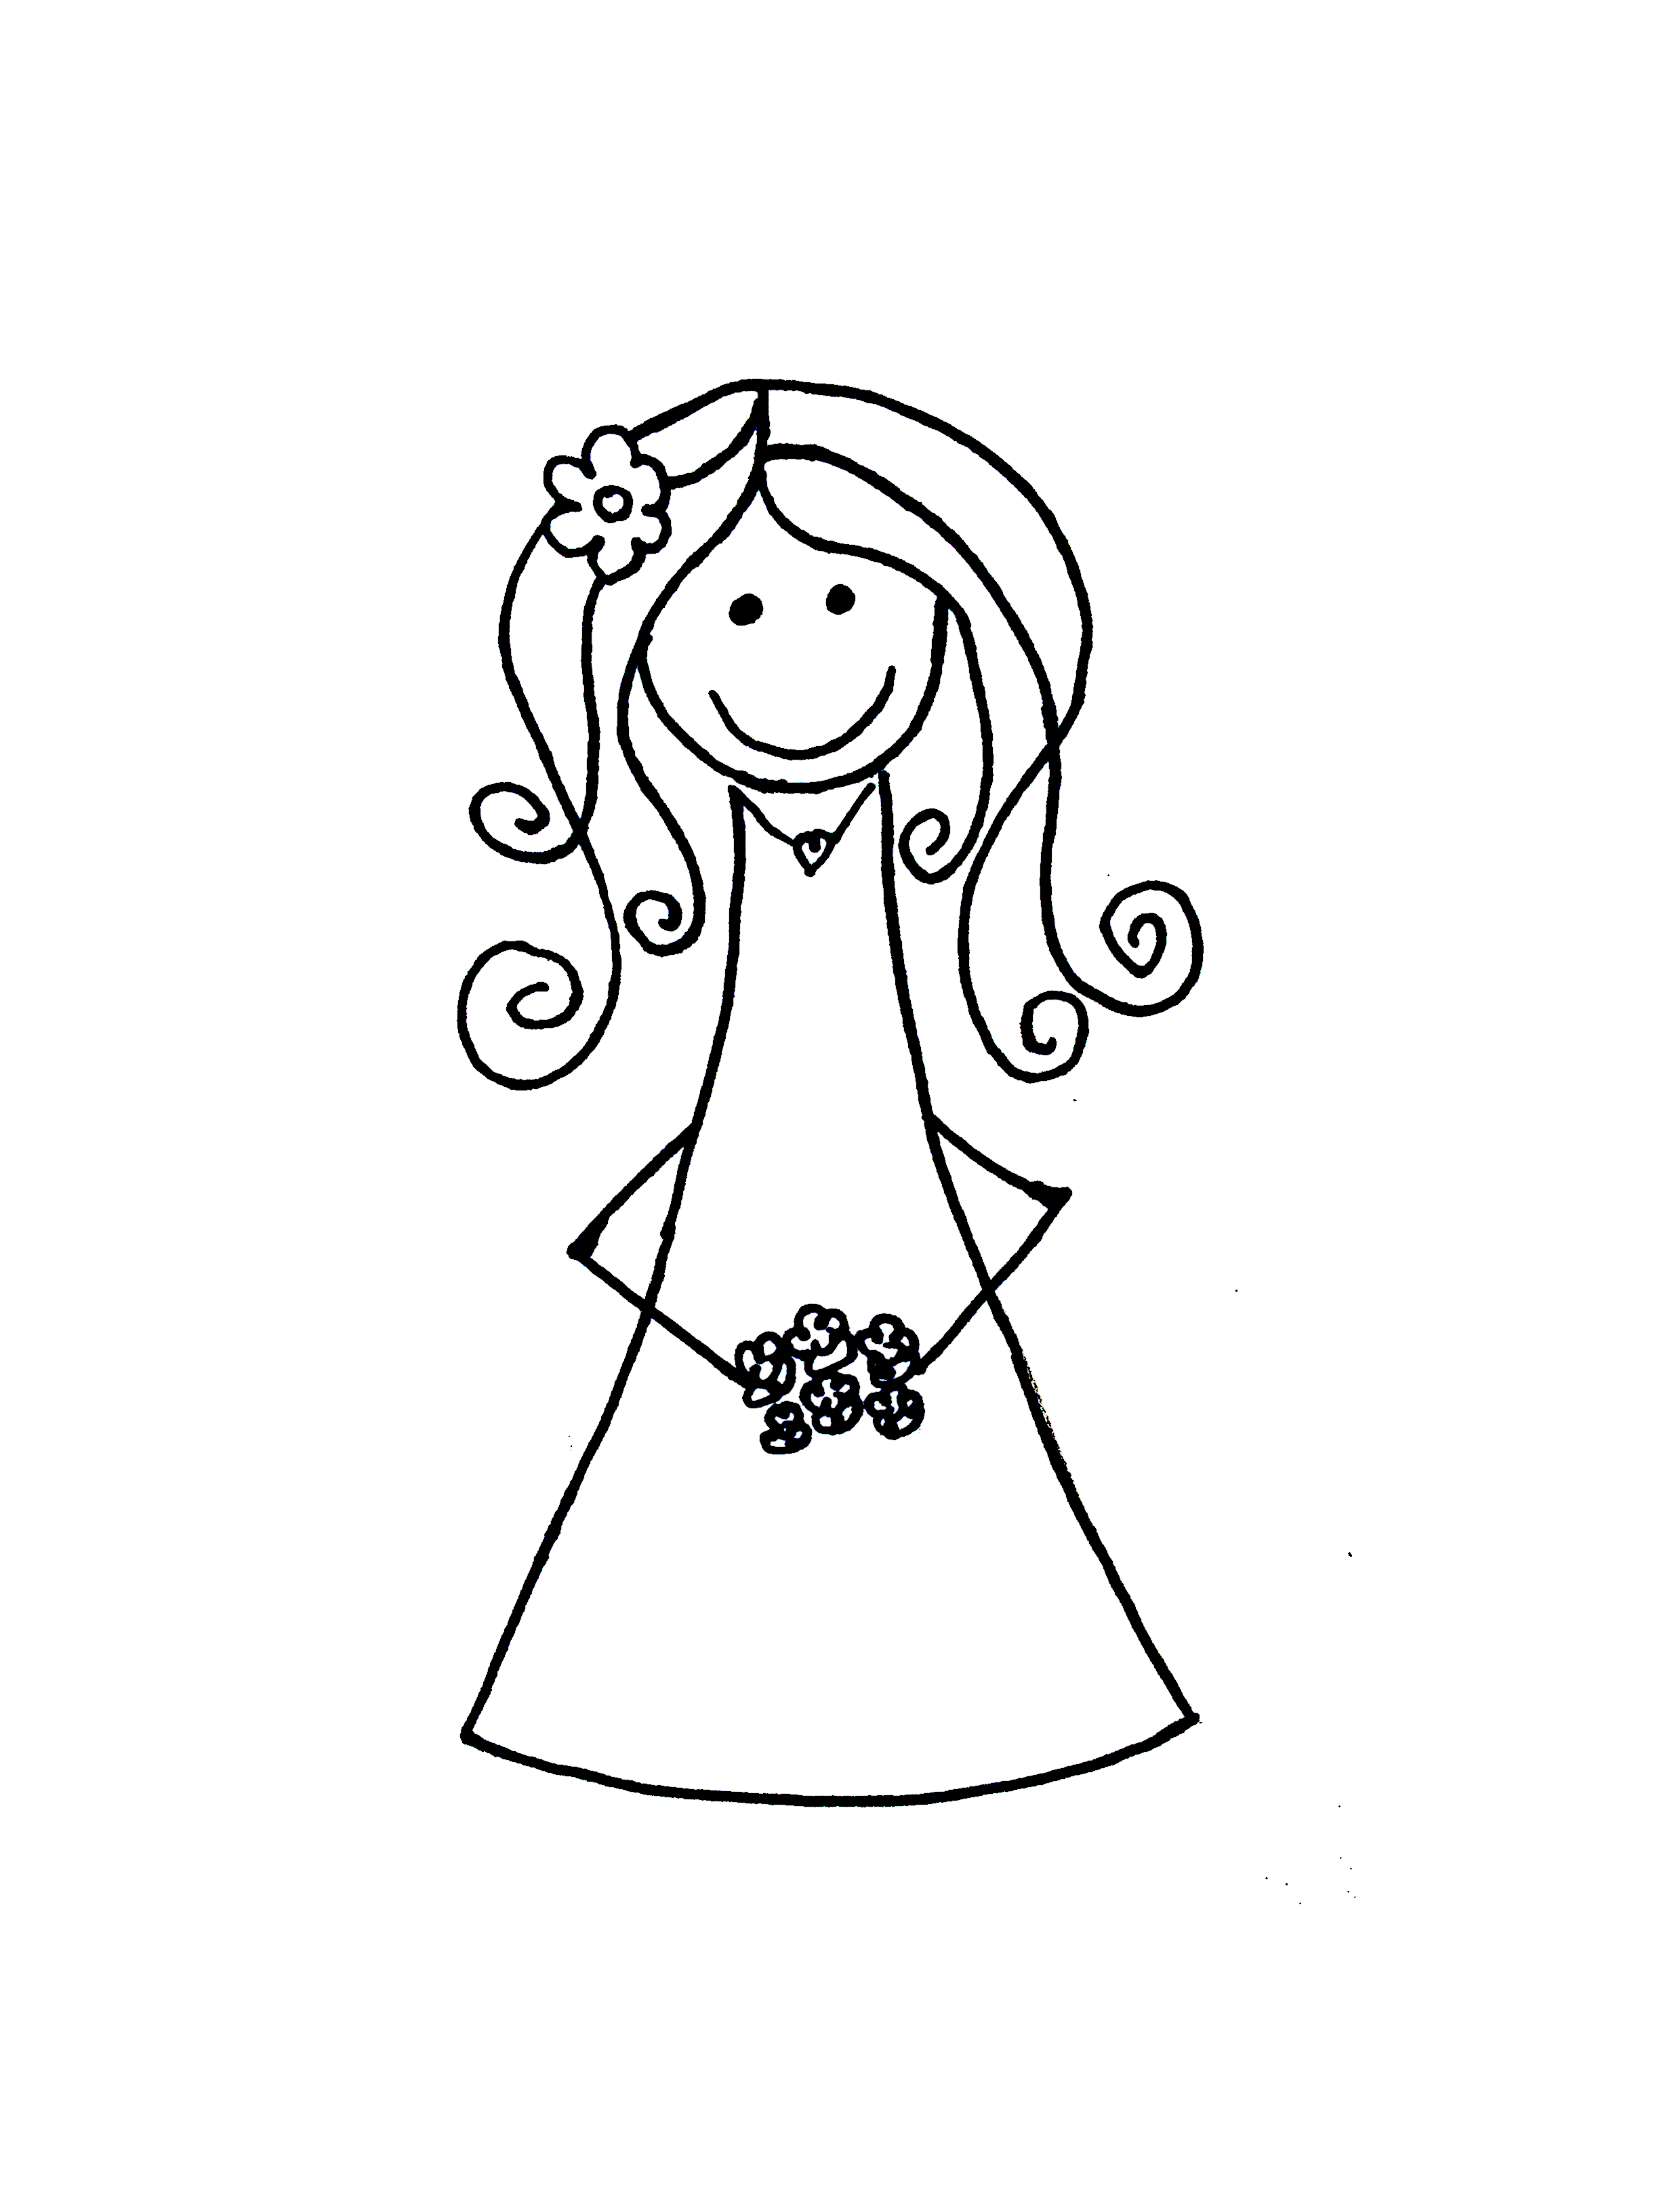 Bride And Groom Cartoon Clip Art - Cliparts.co